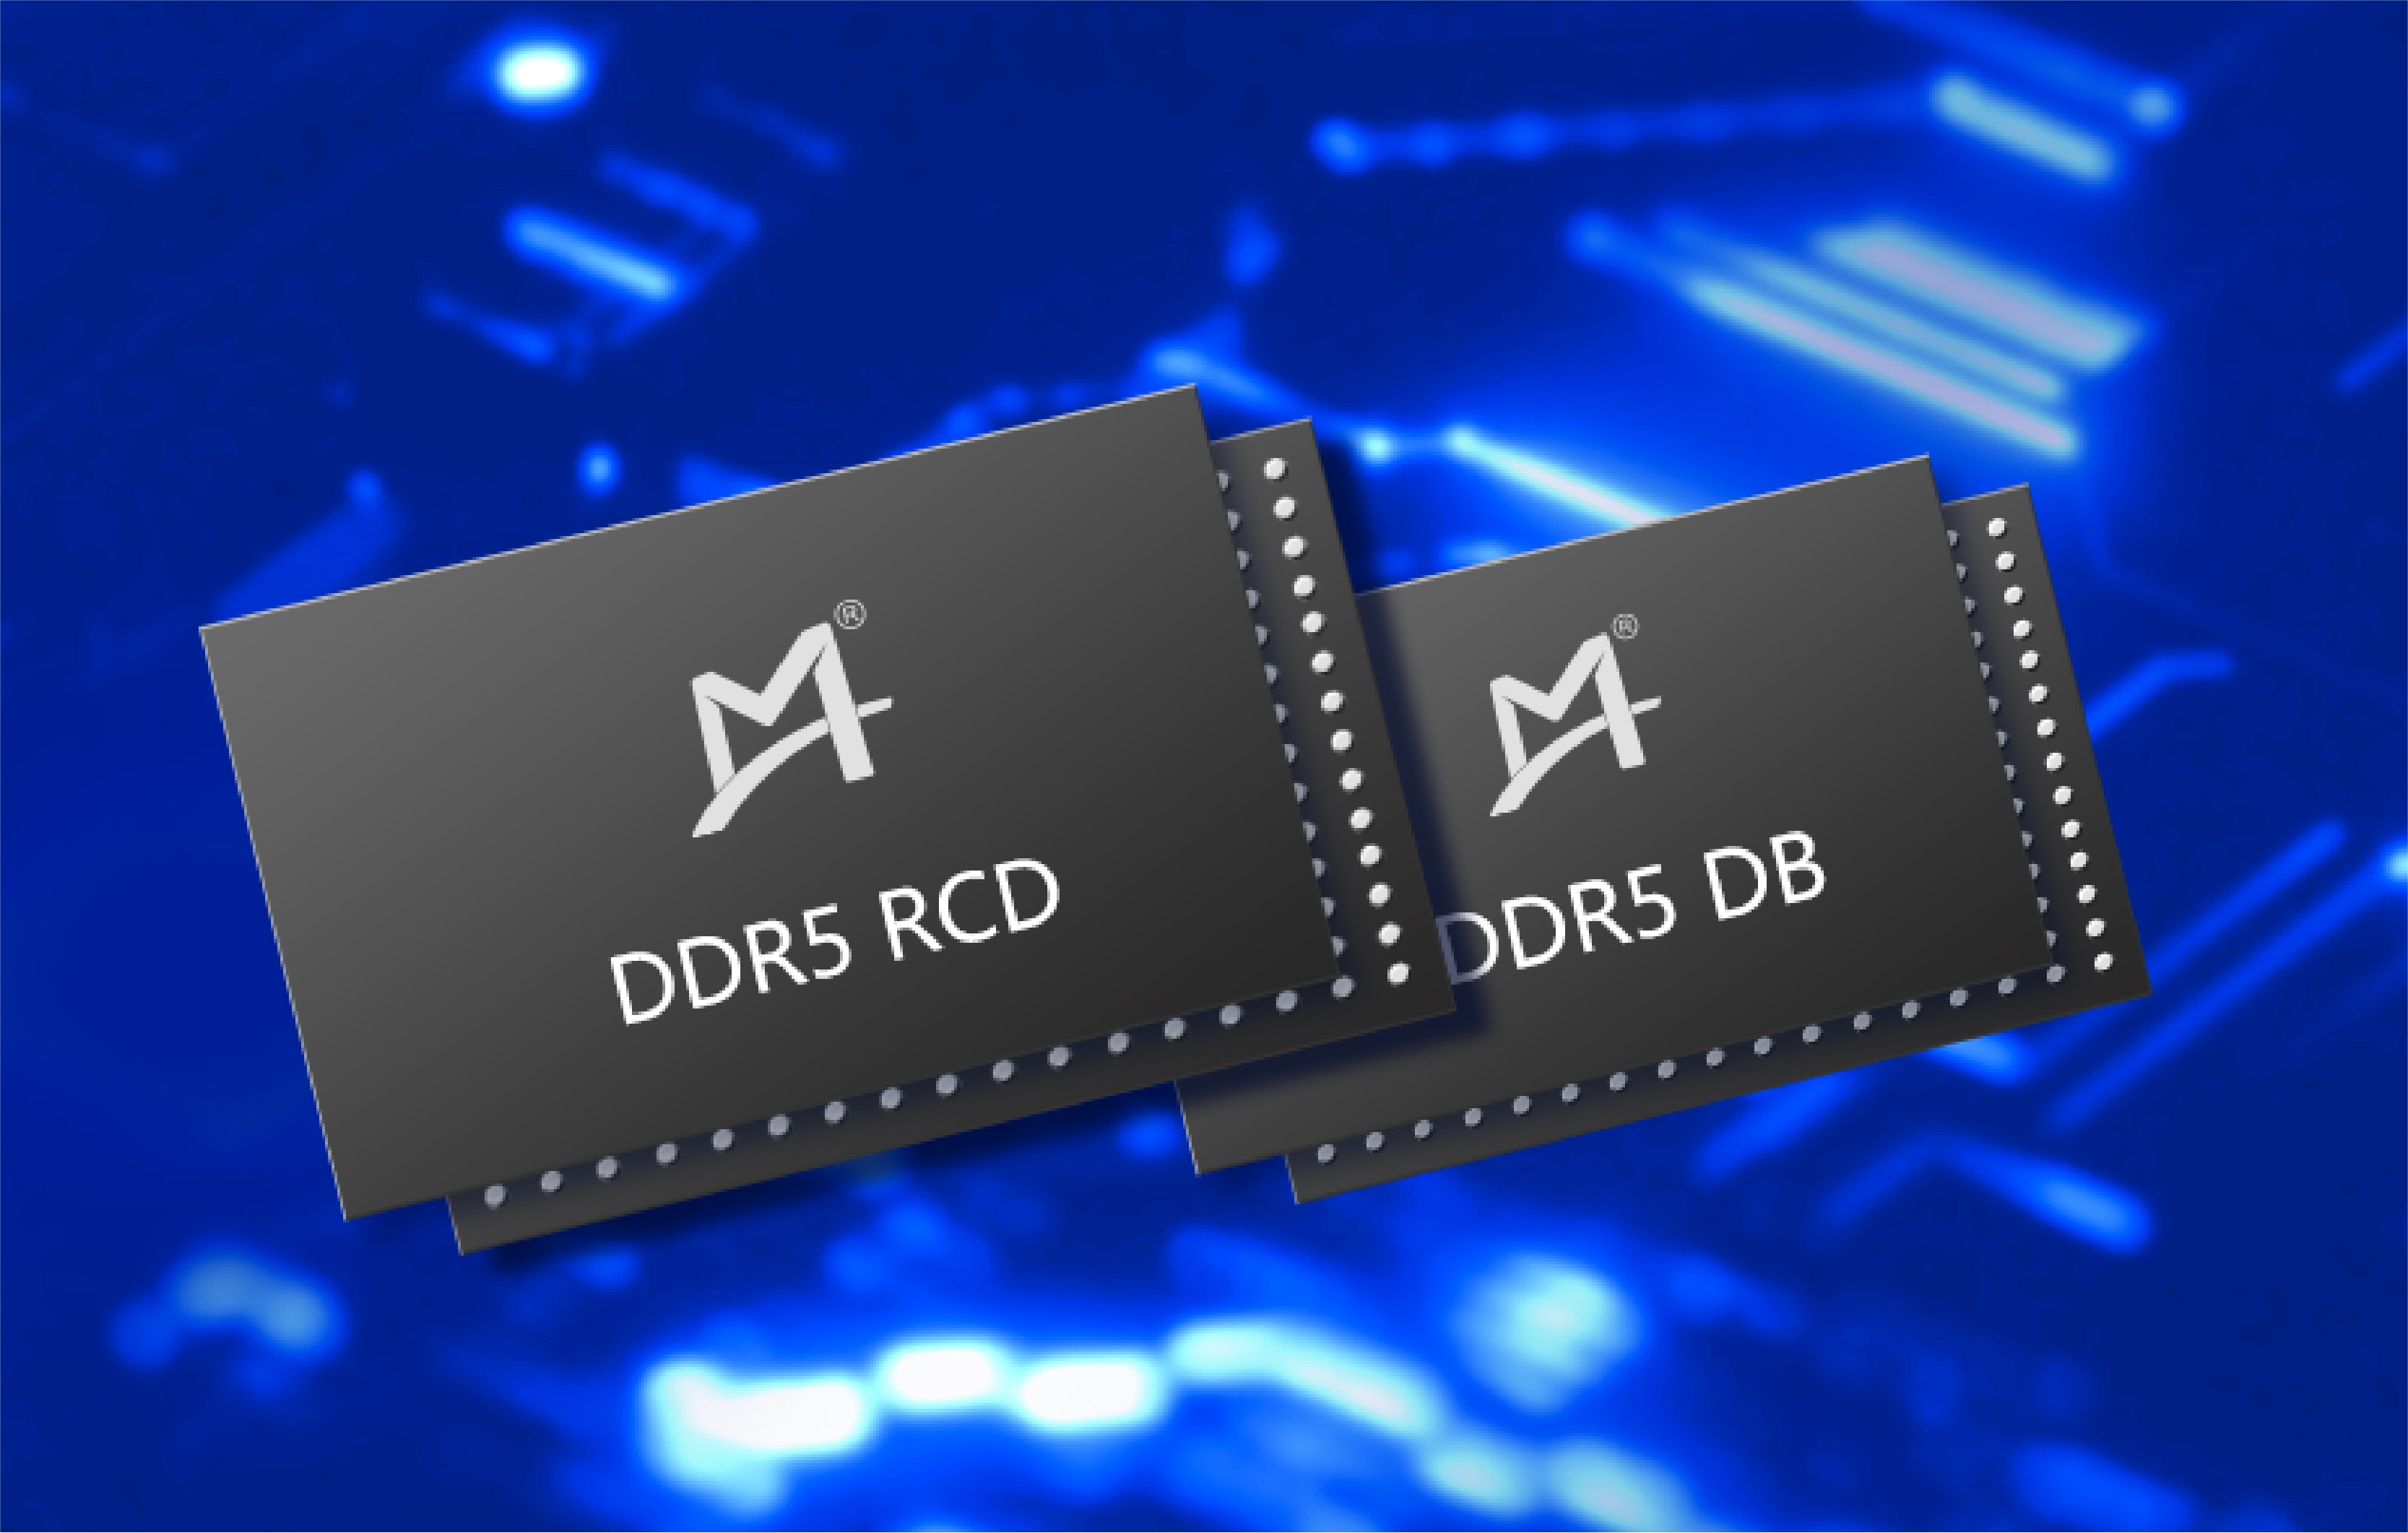 DDR5 RCD and DB